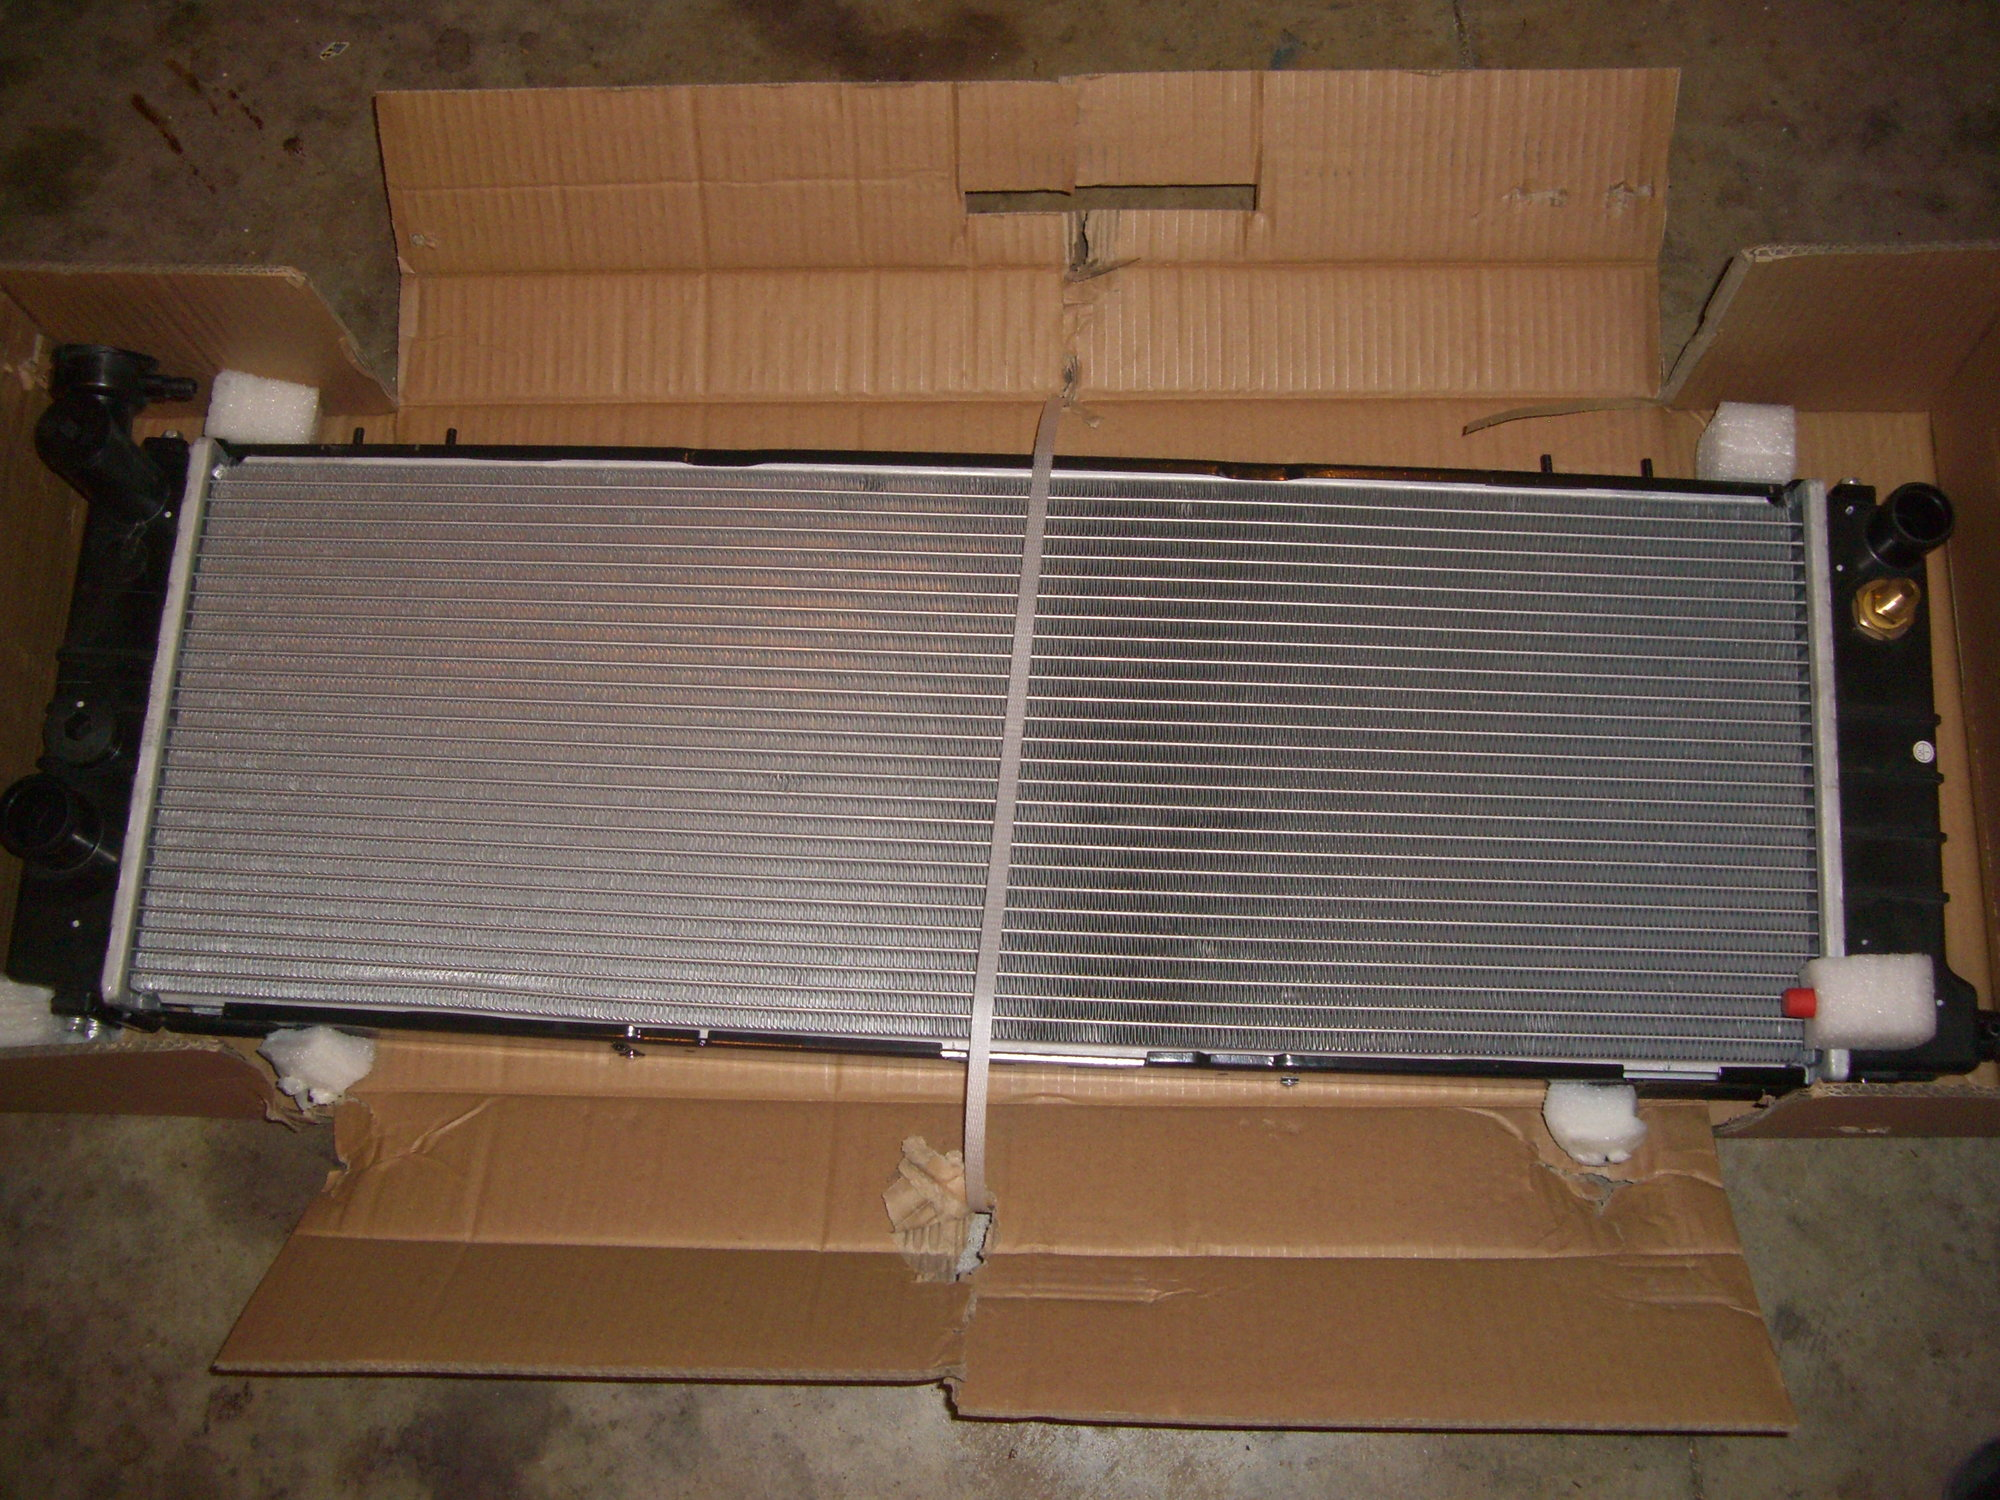 hight resolution of i am trying to use the jeep xj postal carrier radiator the only difference is this radiator is a 2 row and it has a core height in 11 1 8 inch as